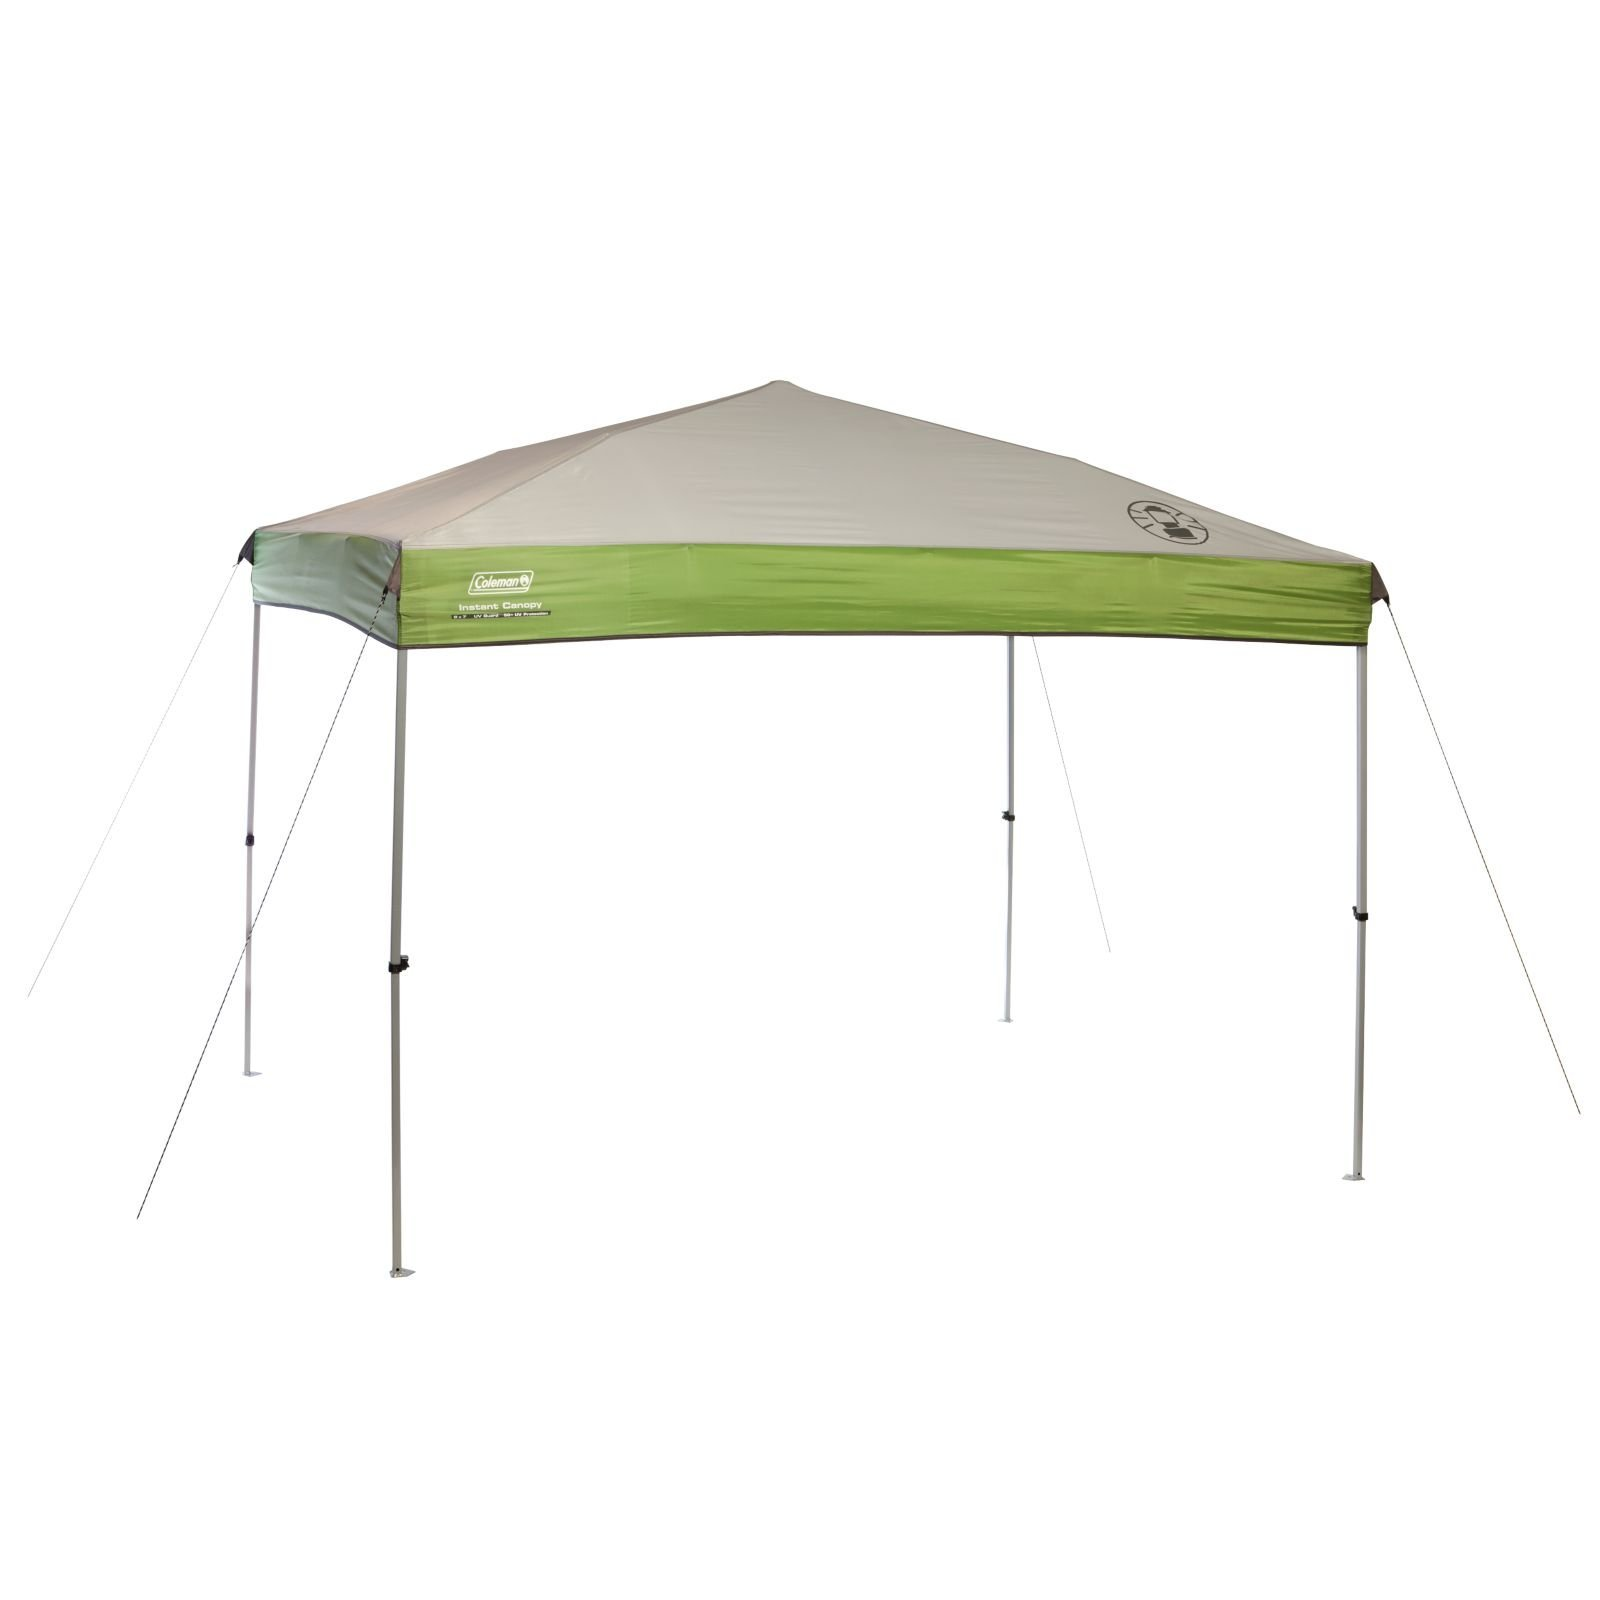 Coleman 9 x 7 ft. Instant Canopy